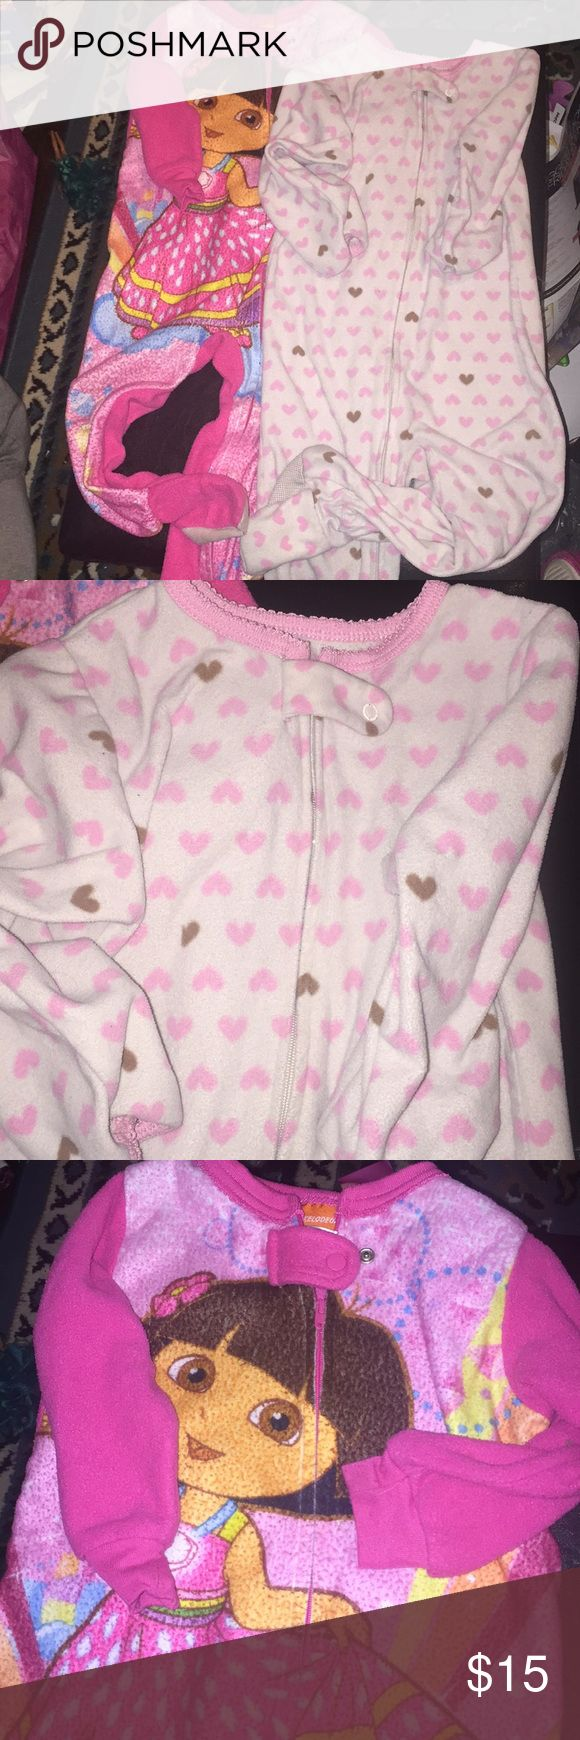 2- PC Footed PJ's Bundle! Cozy & Comfy 2- Pc Footed PJ's! Both Zip-Up! Nickelodeon & (Carter's) Child Of Mine! Both Used Condition & Been Washed Several Times, So Normal Wear/ a Lil Piling From Clothes Dryer! No Holes! No Trades/PP Nickelodeon One Pieces Footies